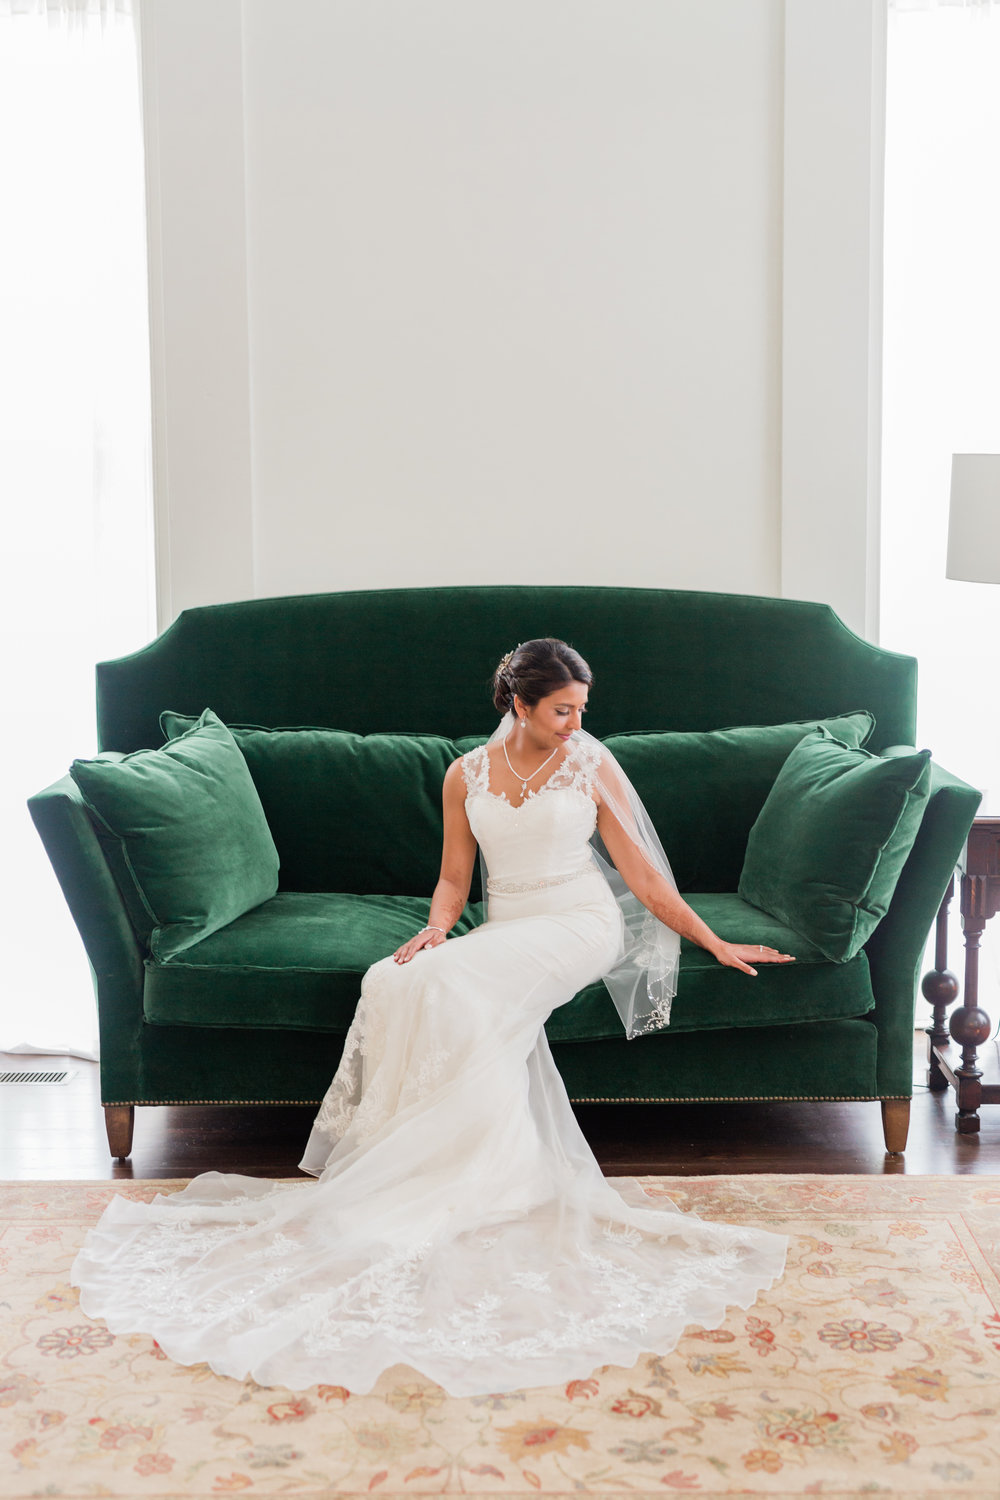 Justin_Priya_Fernicola_Wedding_Columbus_Georgia_Fallen_Photography-1235.JPG